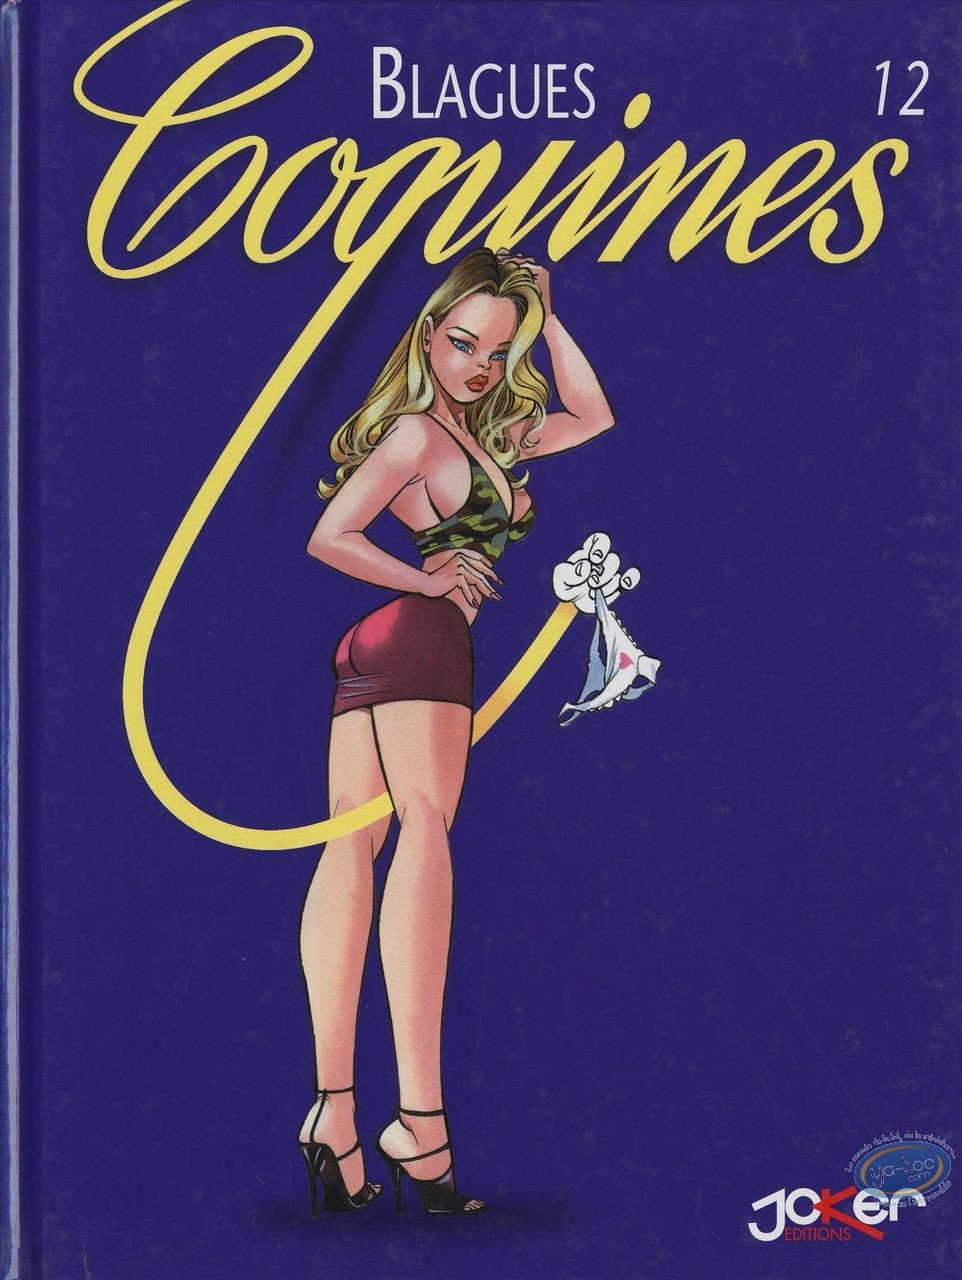 BD adultes, Blagues Coquines : Blagues Coquines, Tome 12